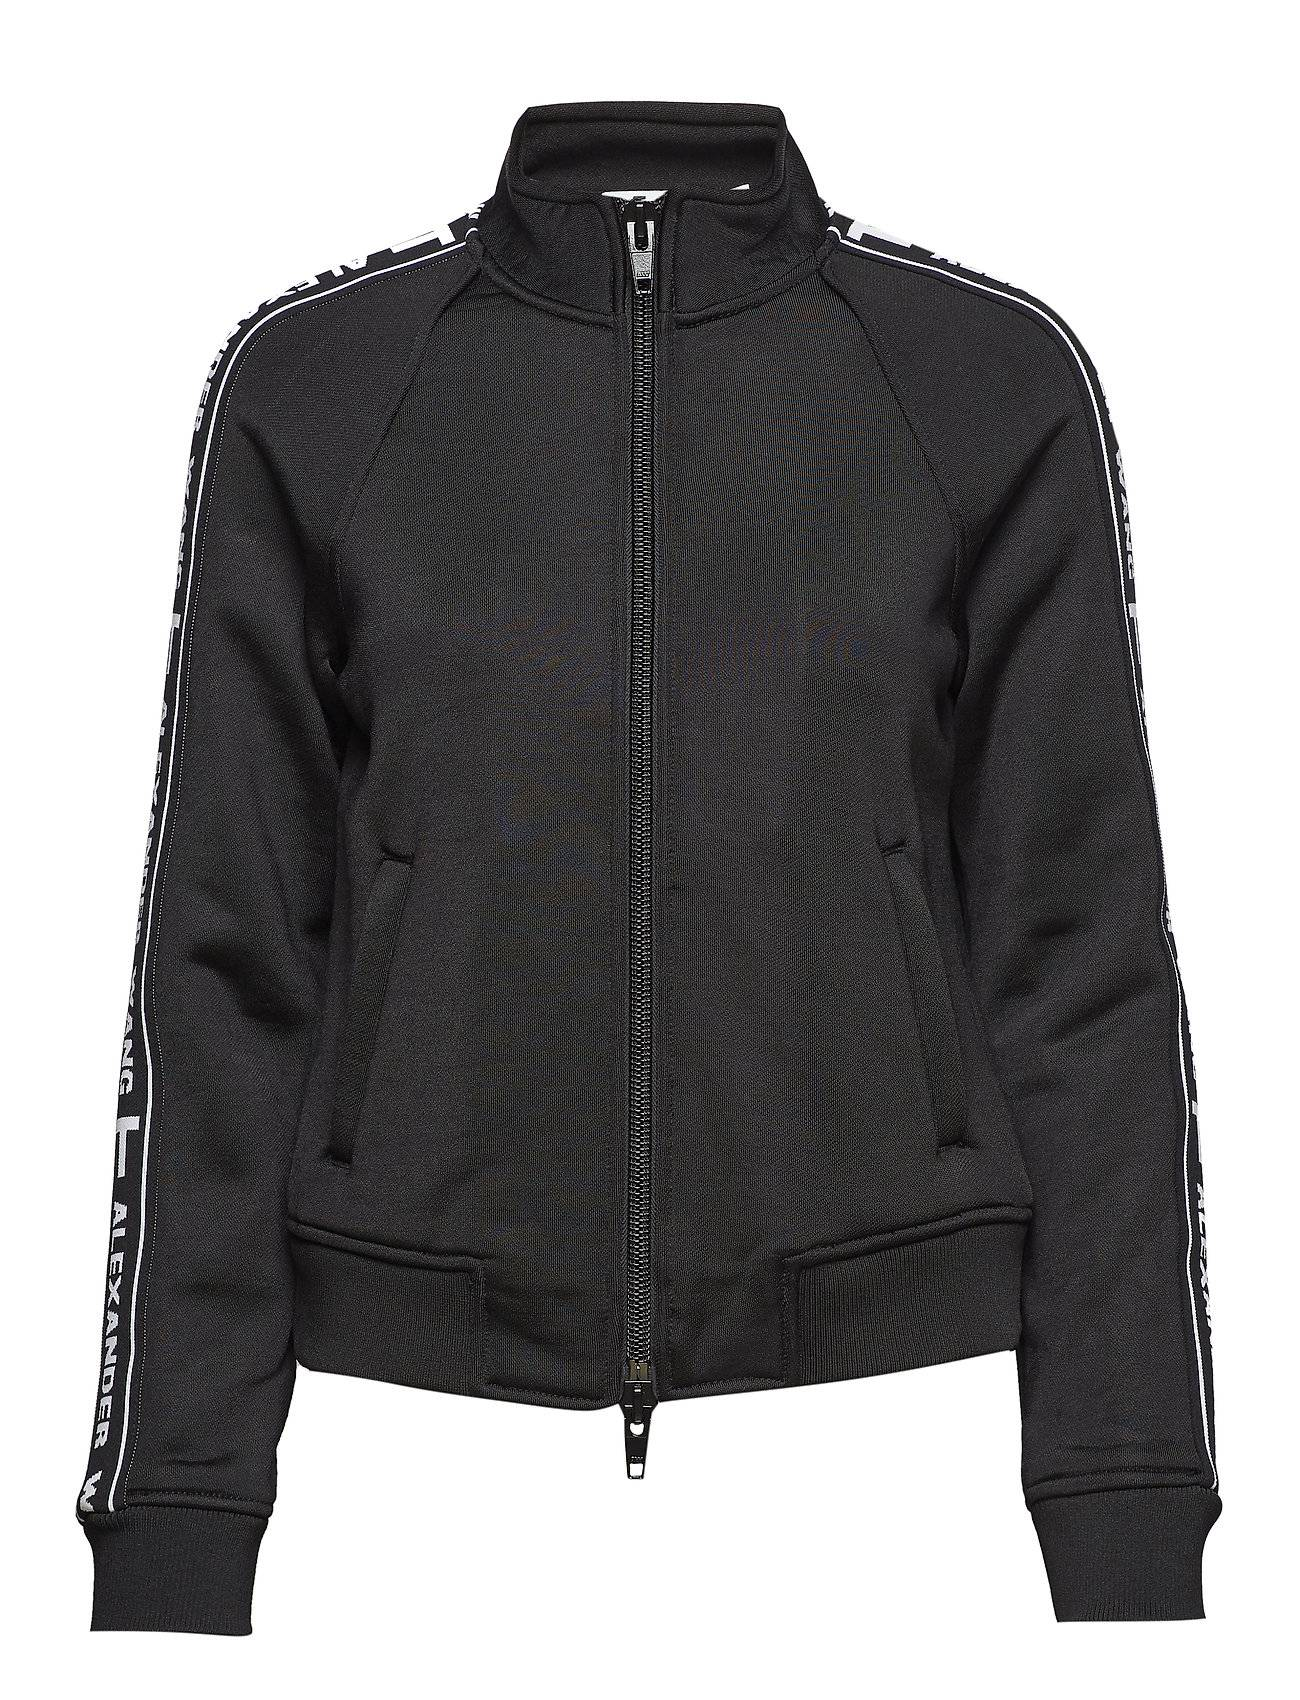 T by Alexander Wang Sleek French Terry Full-Zip Shrunken Track Jacket